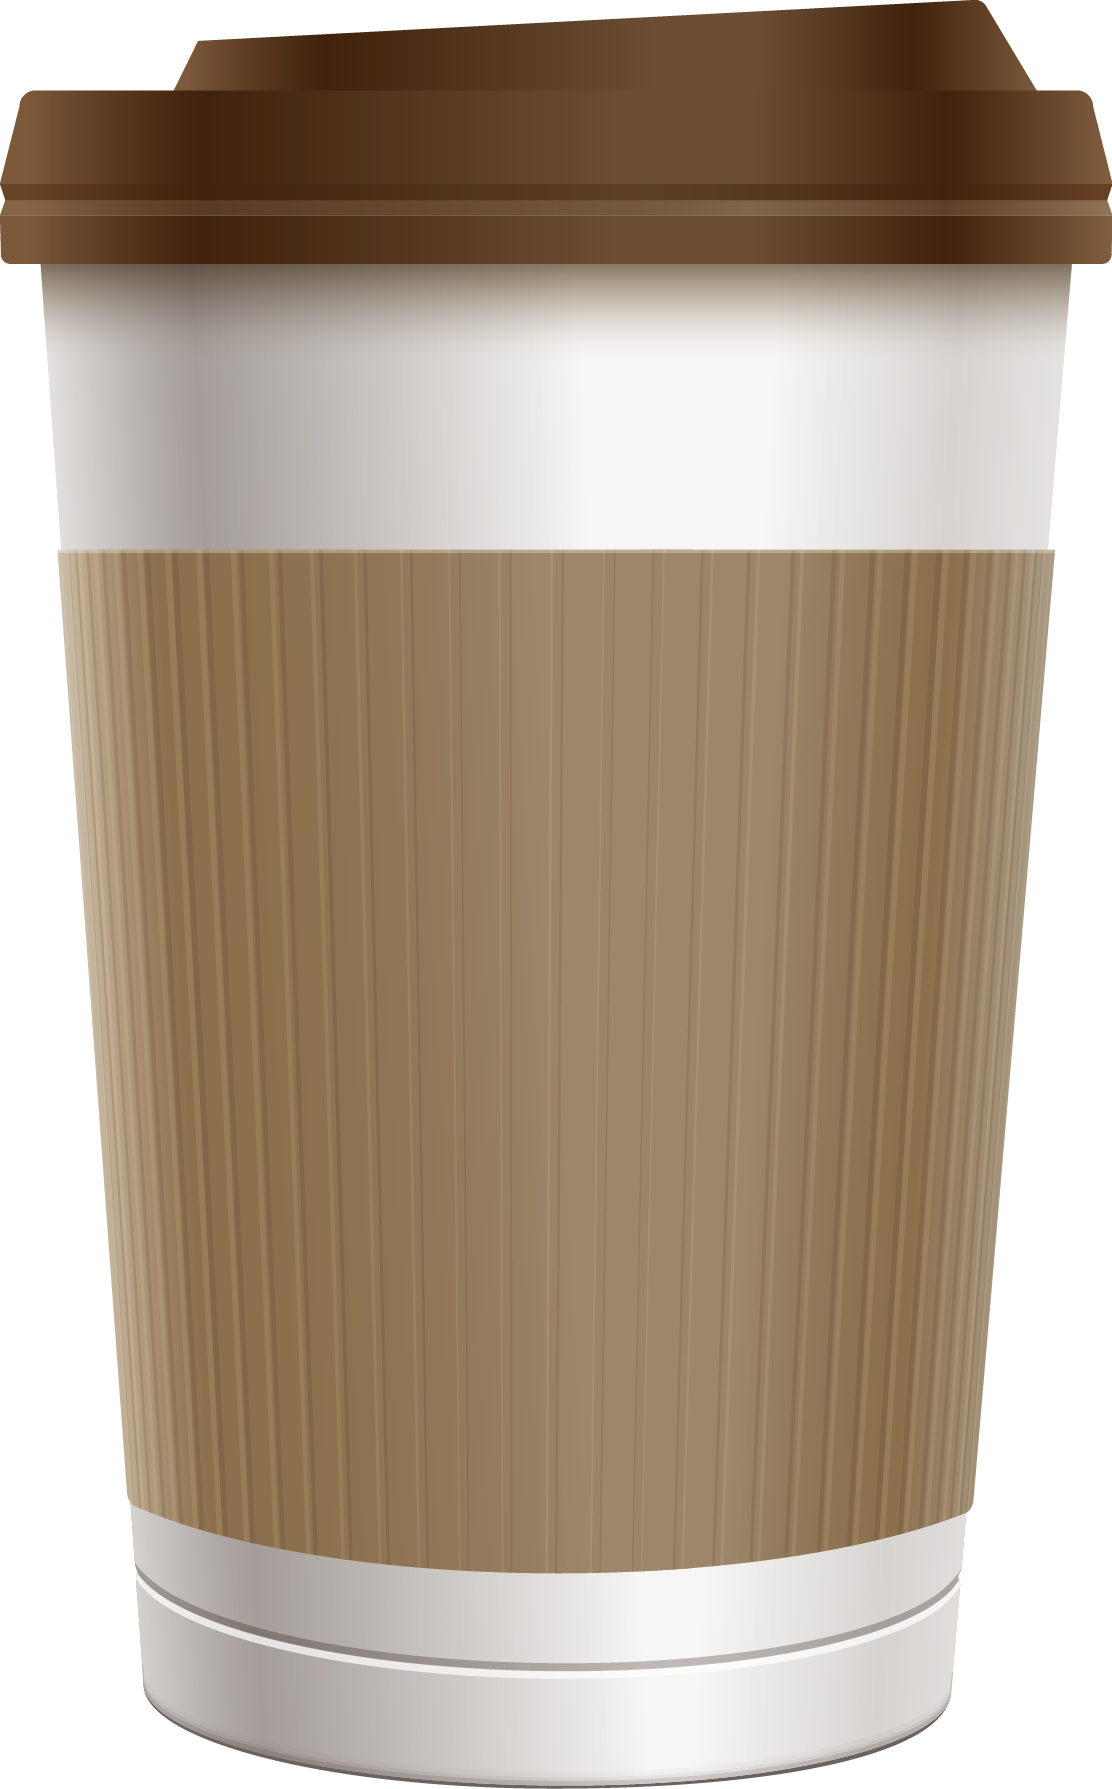 jpg freeuse Coffee cup clipart free. Adobe illustrator paper clip